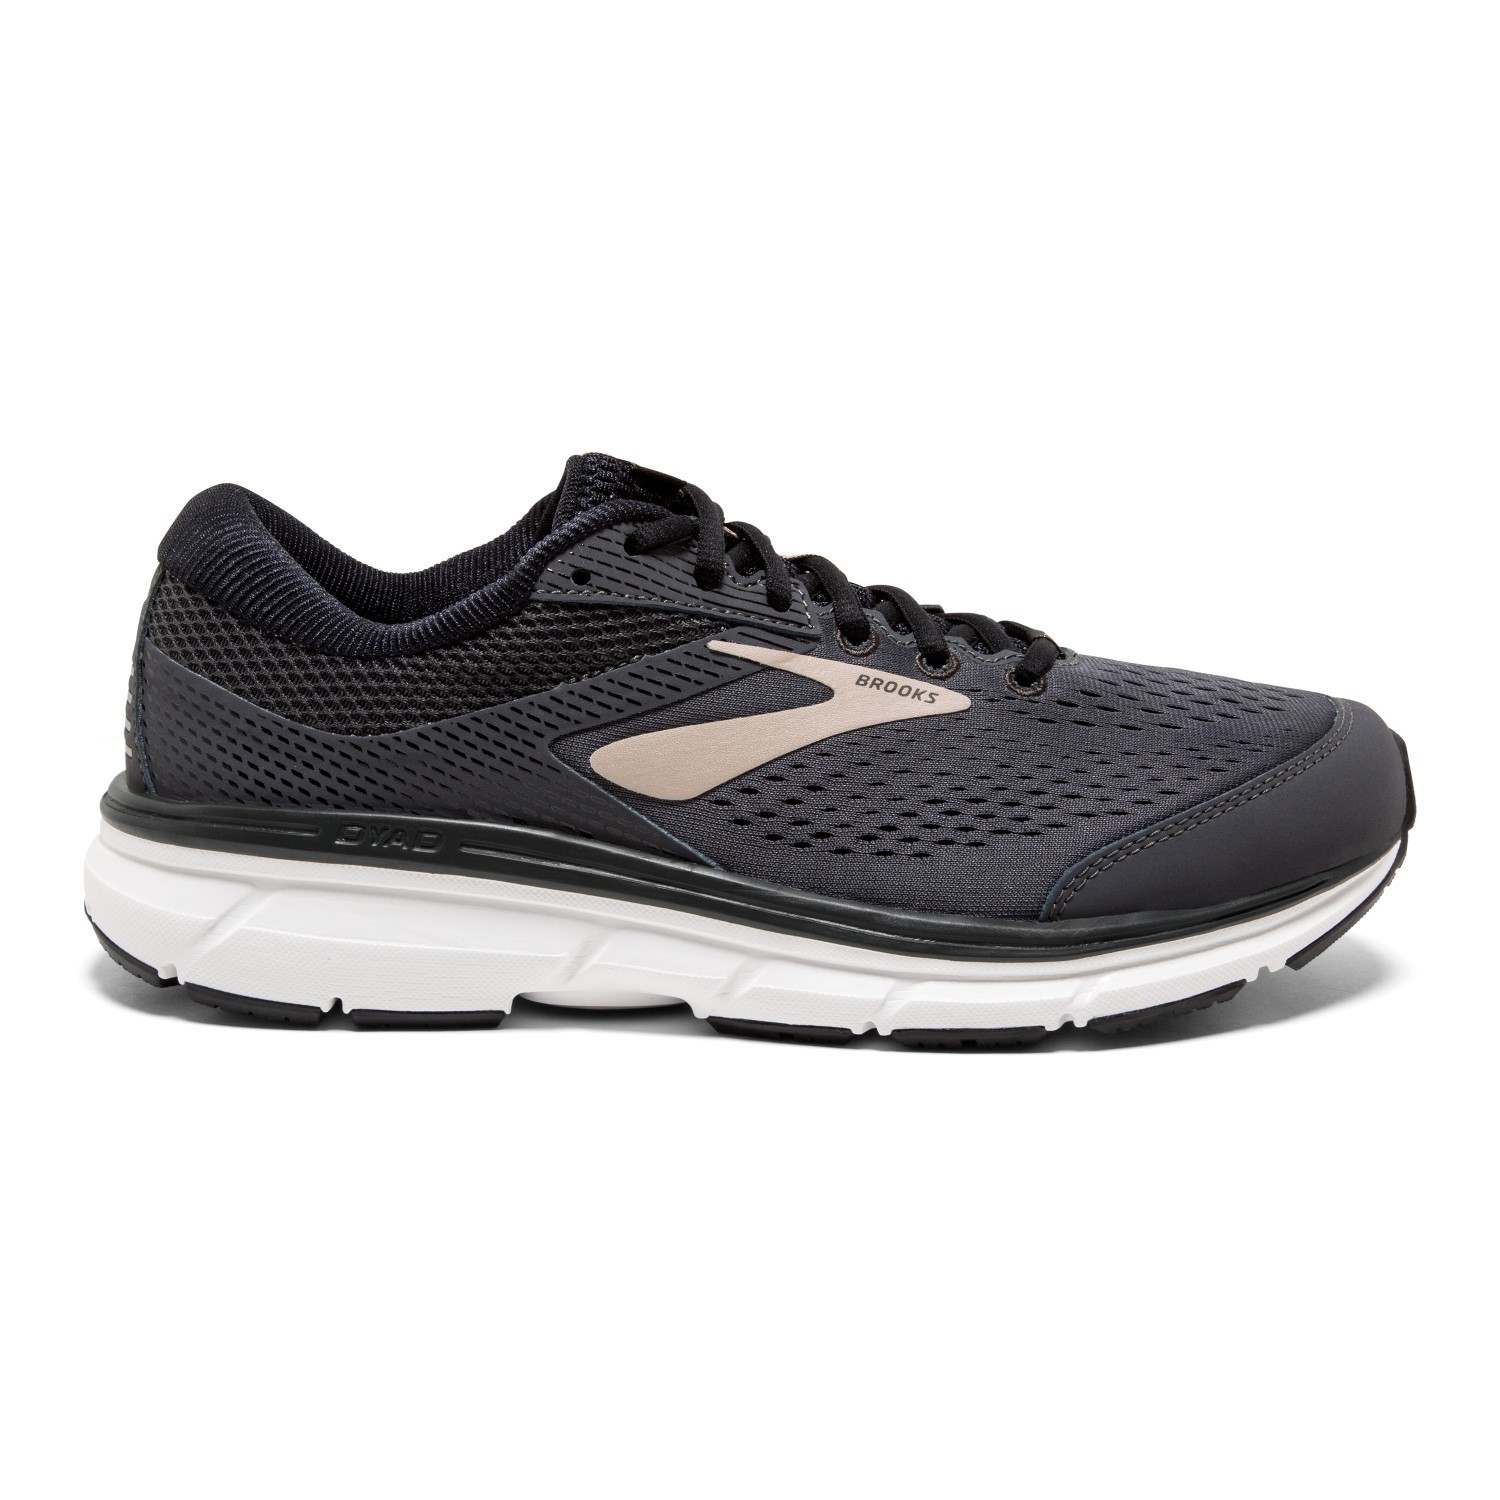 Brooks Dyad 10 - Mens Running Shoes - Grey Black Tan  9391780ce